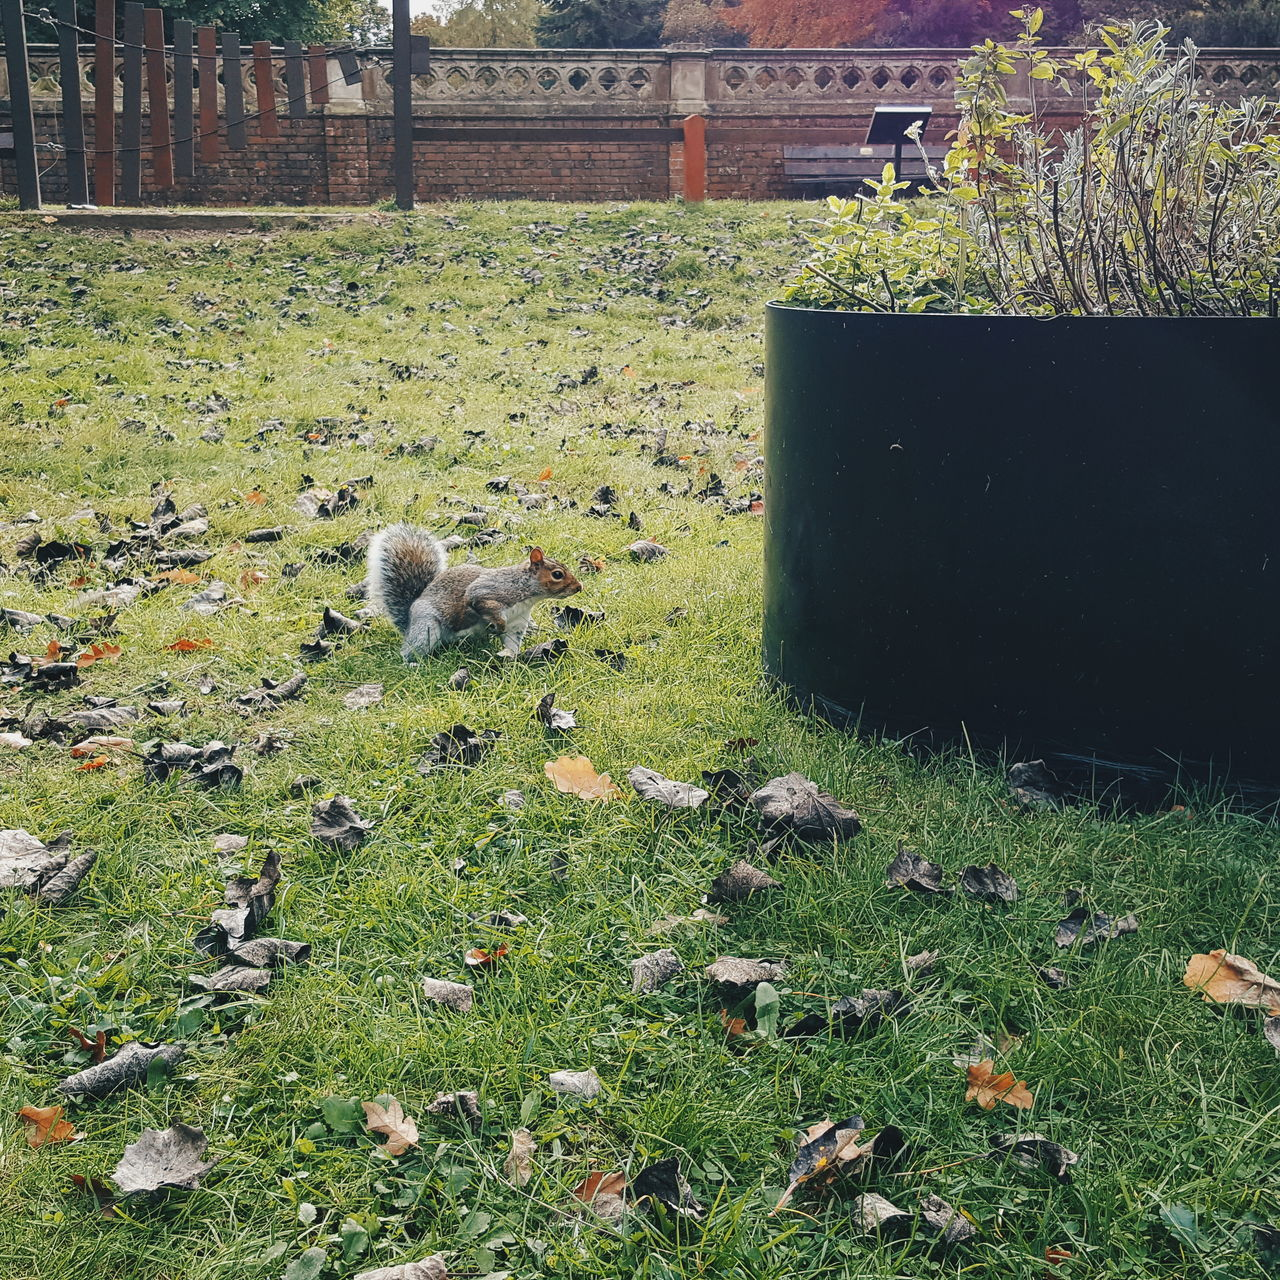 Squizzle. Nature Grass Outdoors No People Day Beauty In Nature Squirrel Grey Squirrel Animal Autumn VSCO VSCO Cam Samsungphotography Samsung Galaxy S6 Lincolnshire